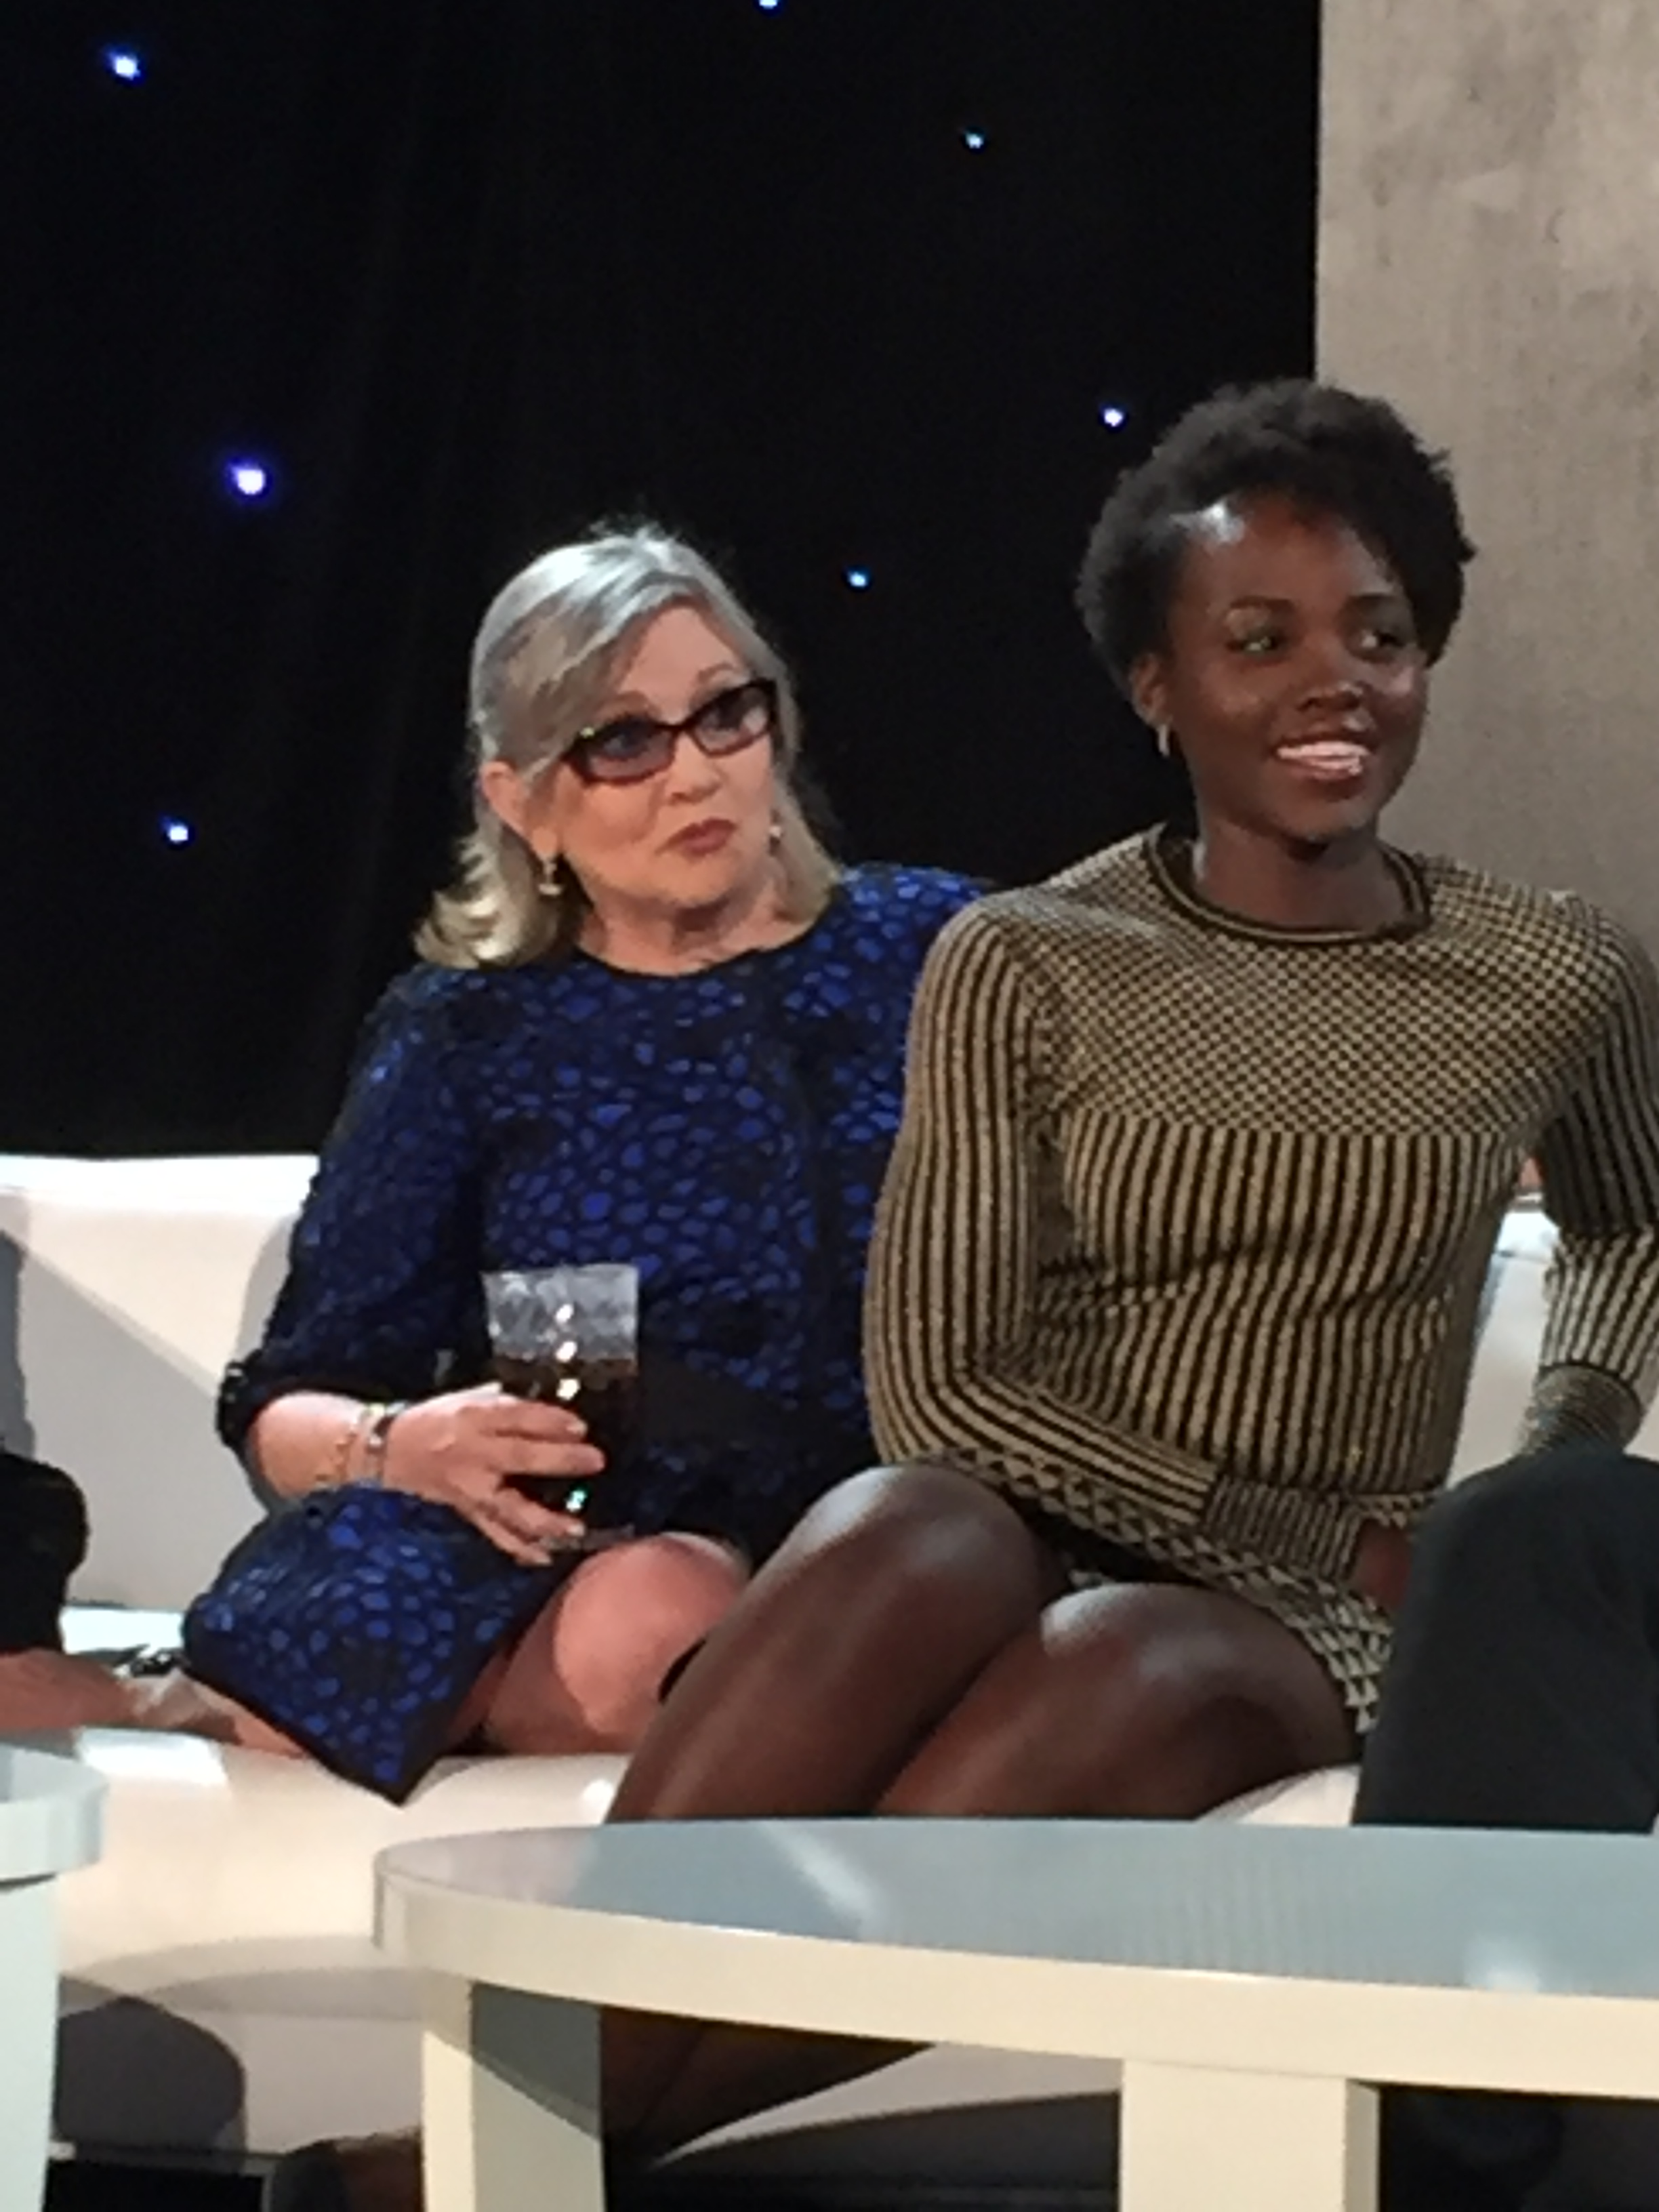 Carrie Fisher and Lupita Nyong'o